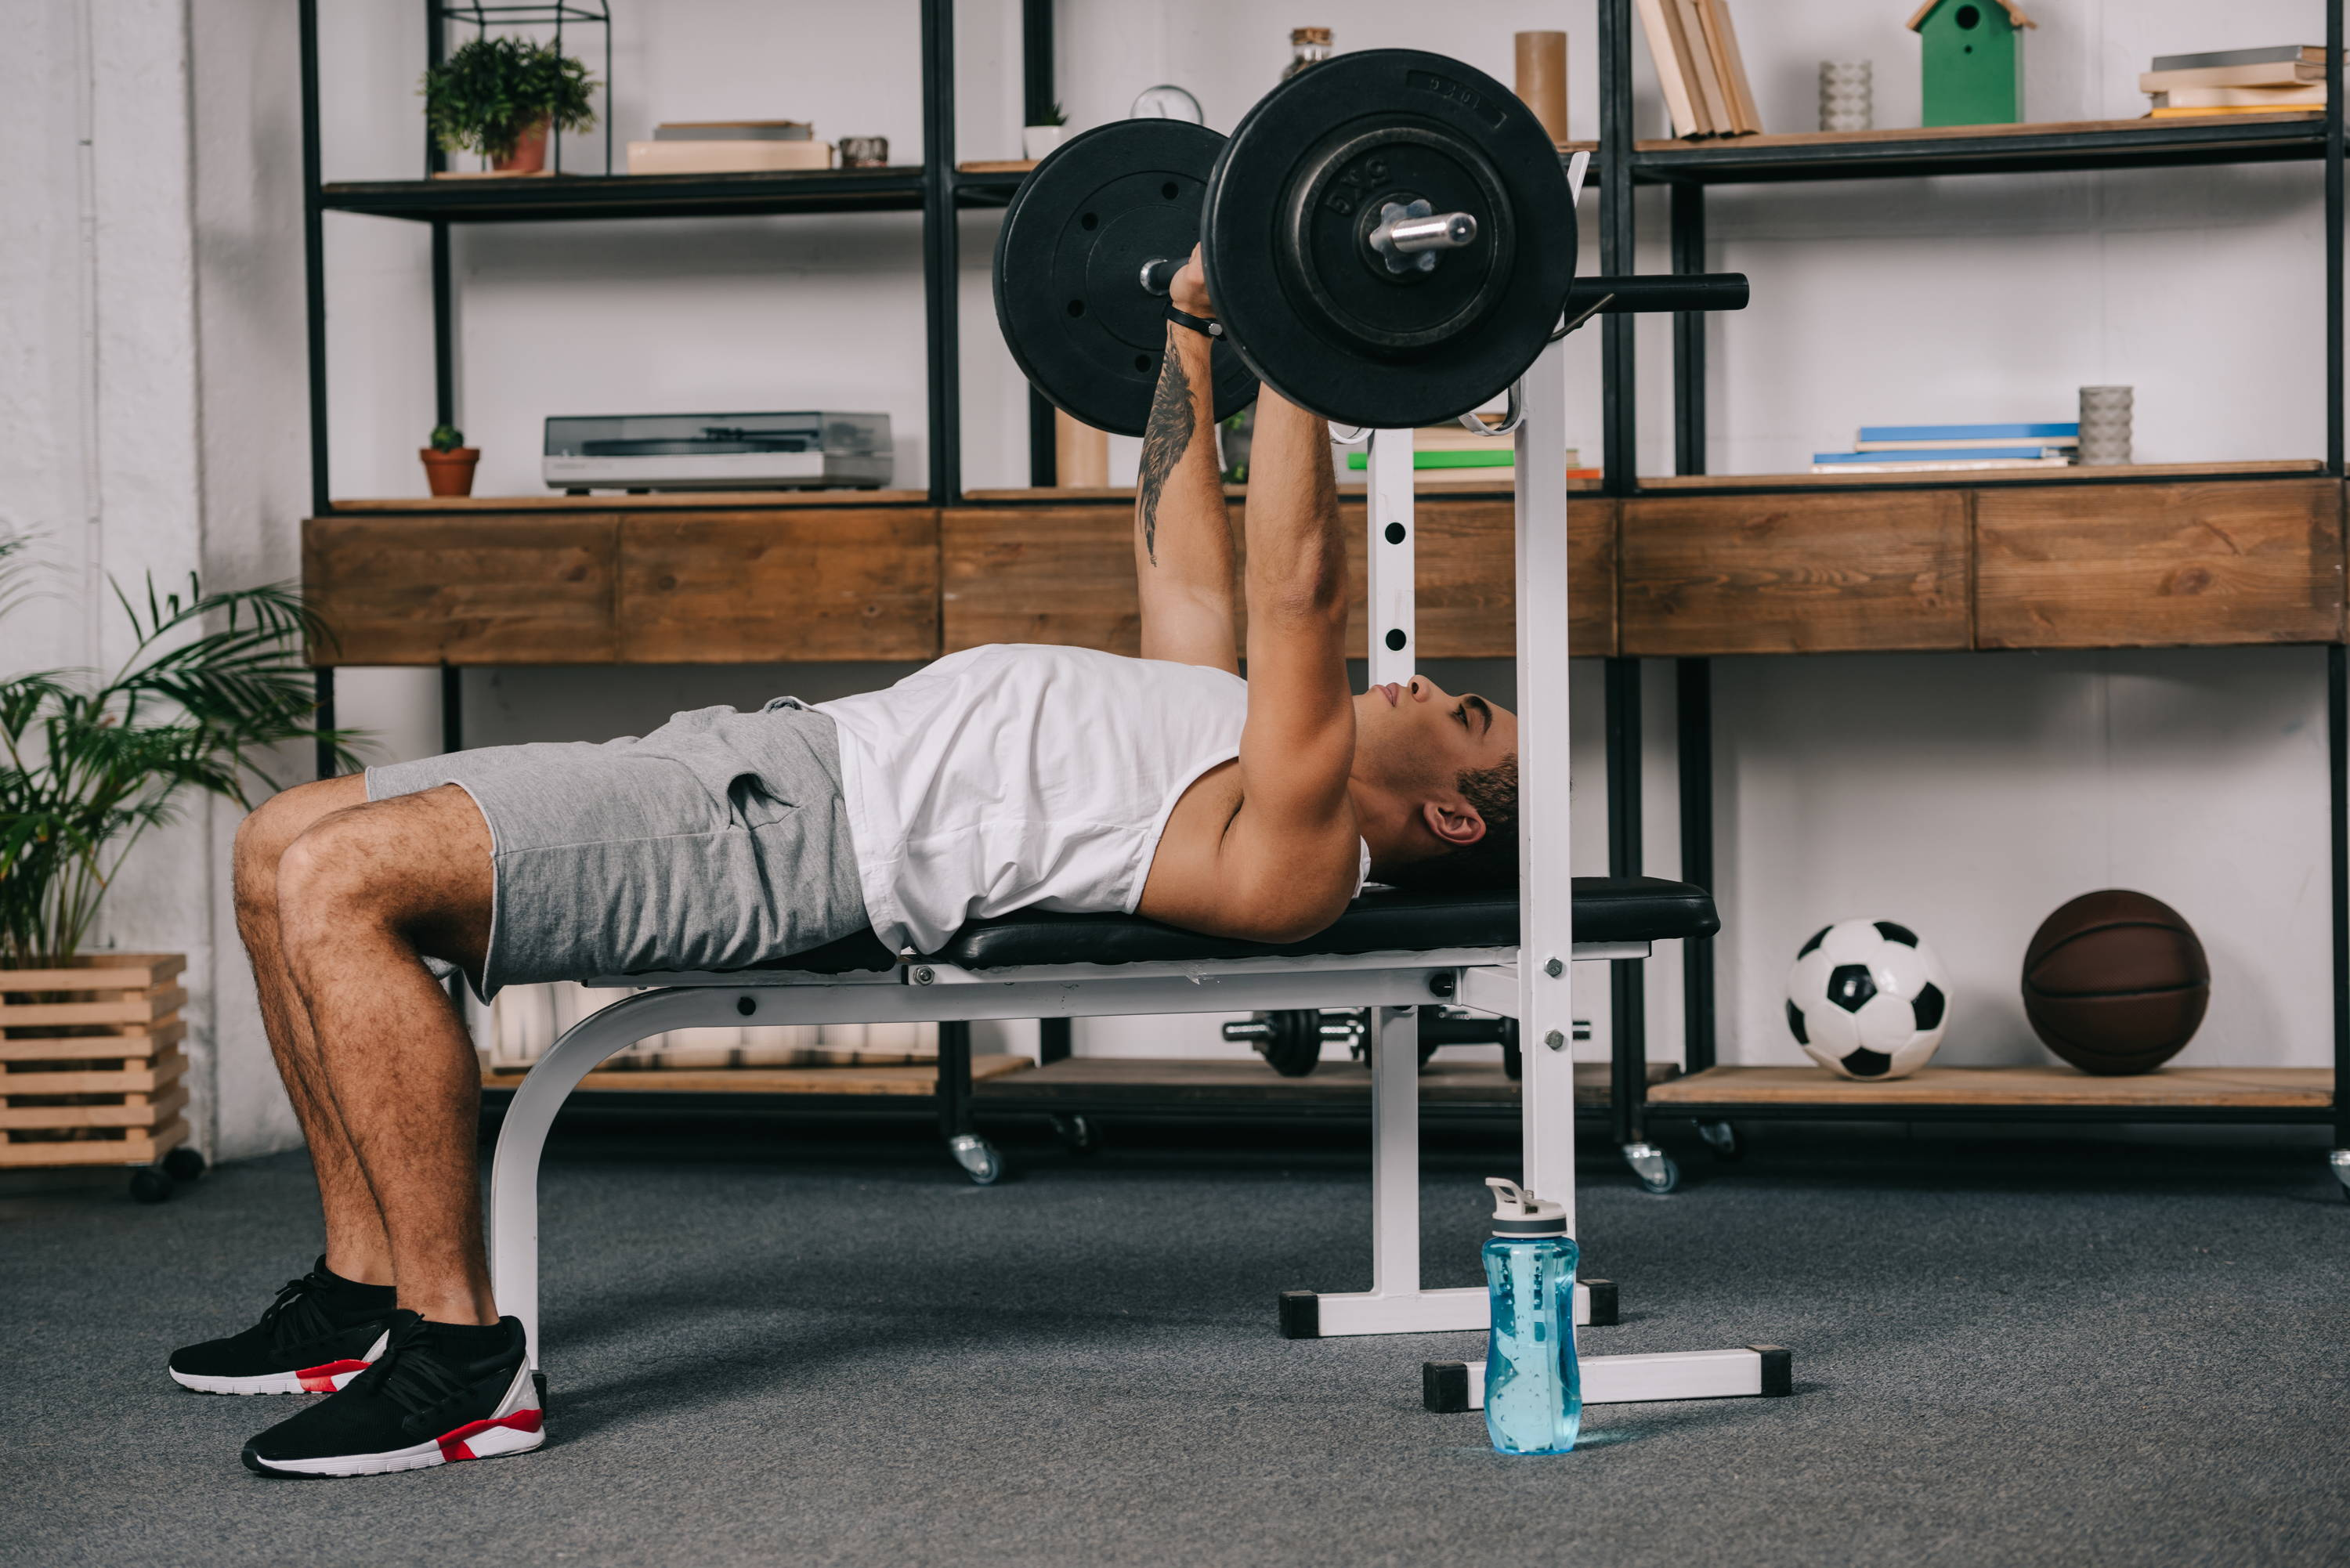 A man working out in his living room on a bench press